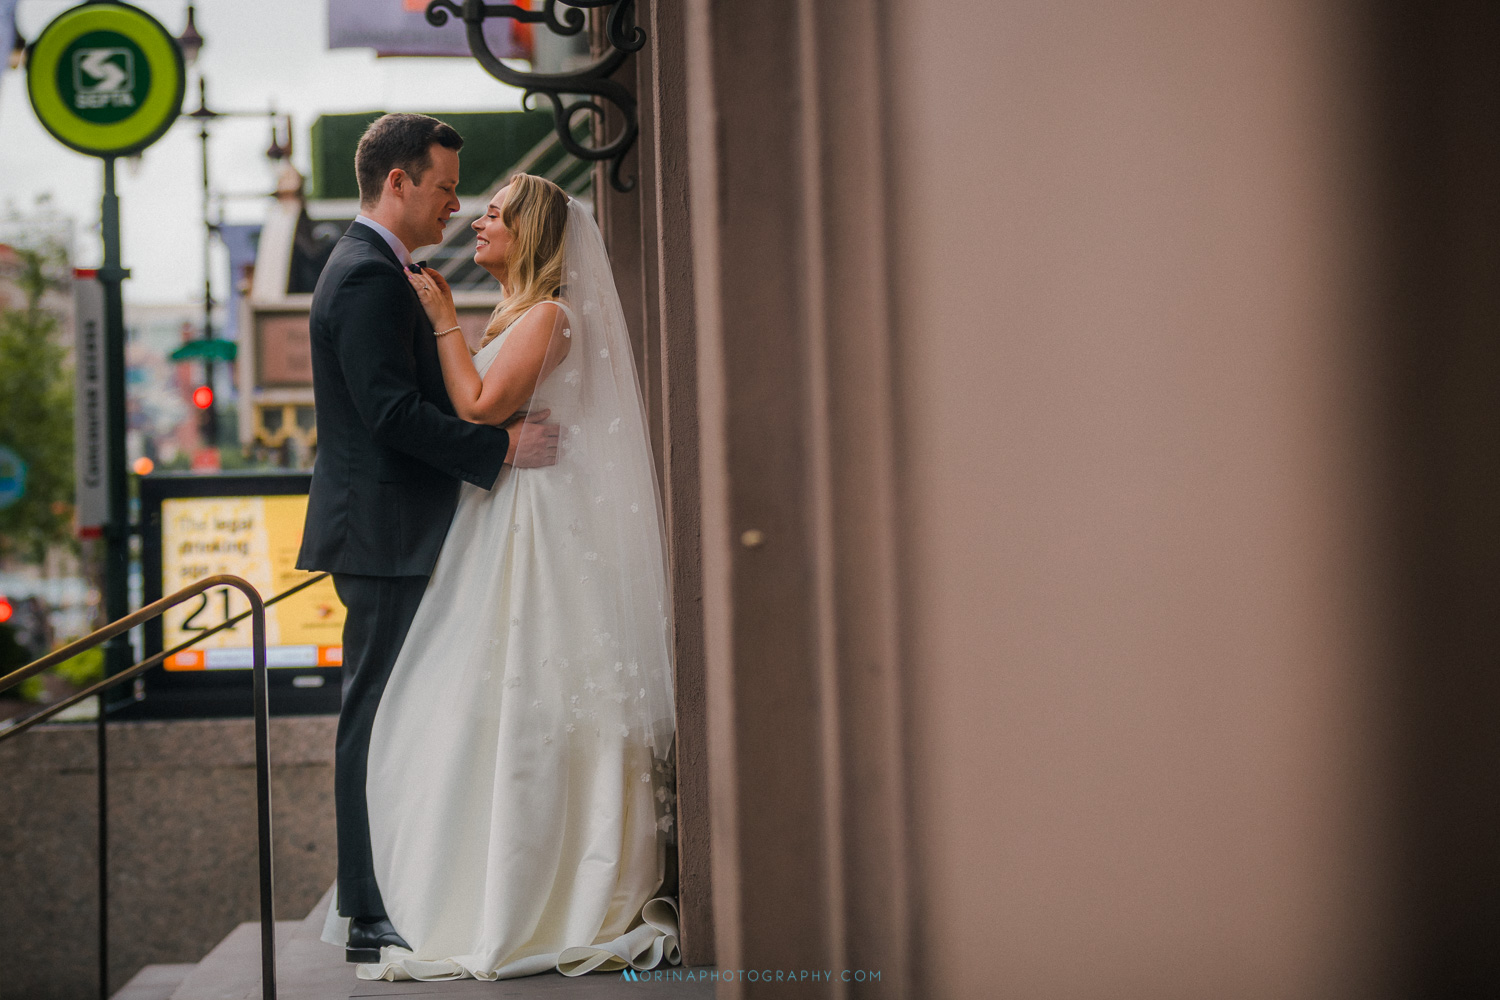 Alexandra & Brian Wedding at Academy of Music30.jpg